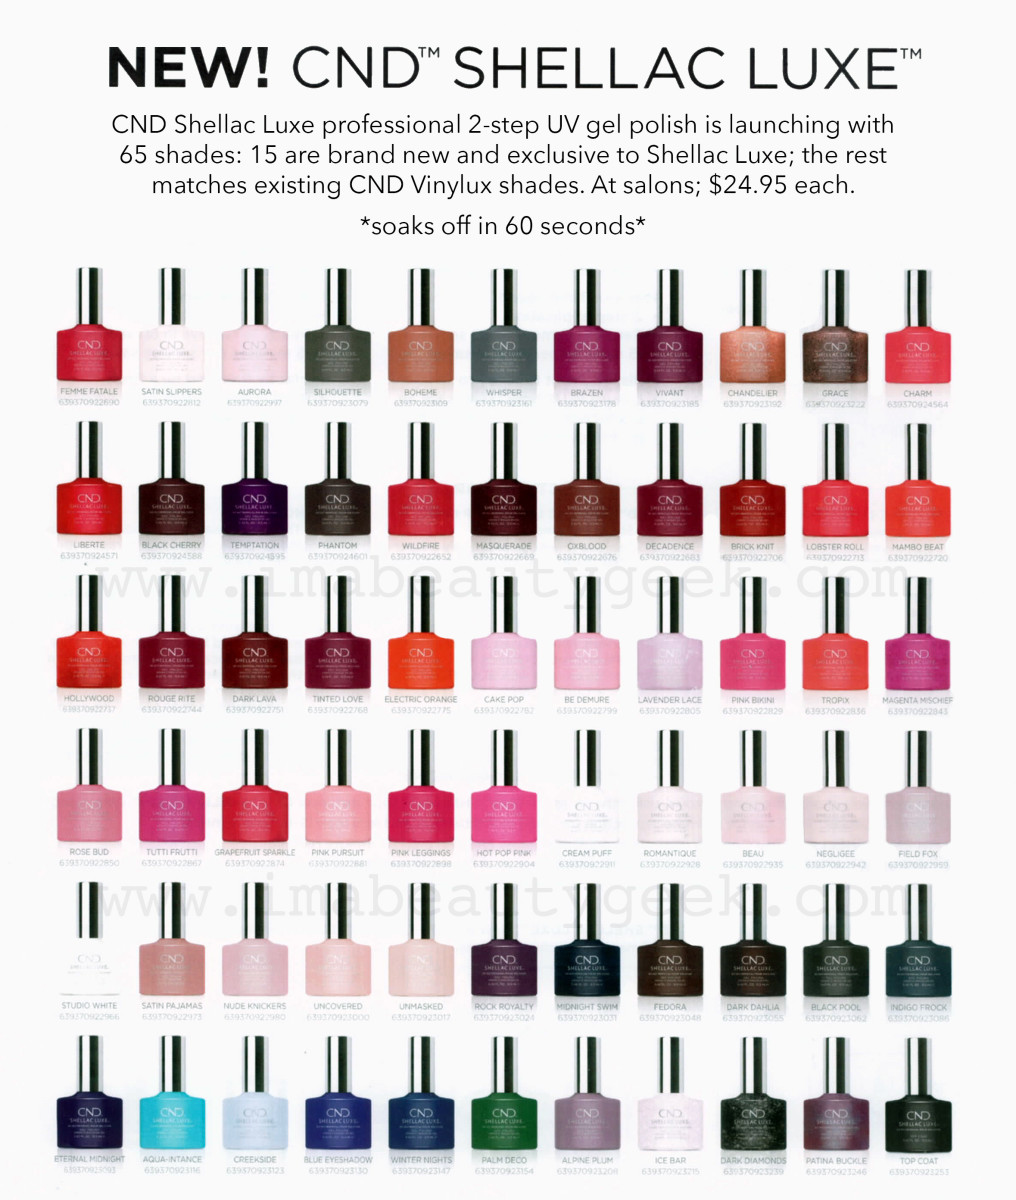 CND Shellac Luxe bottle chart